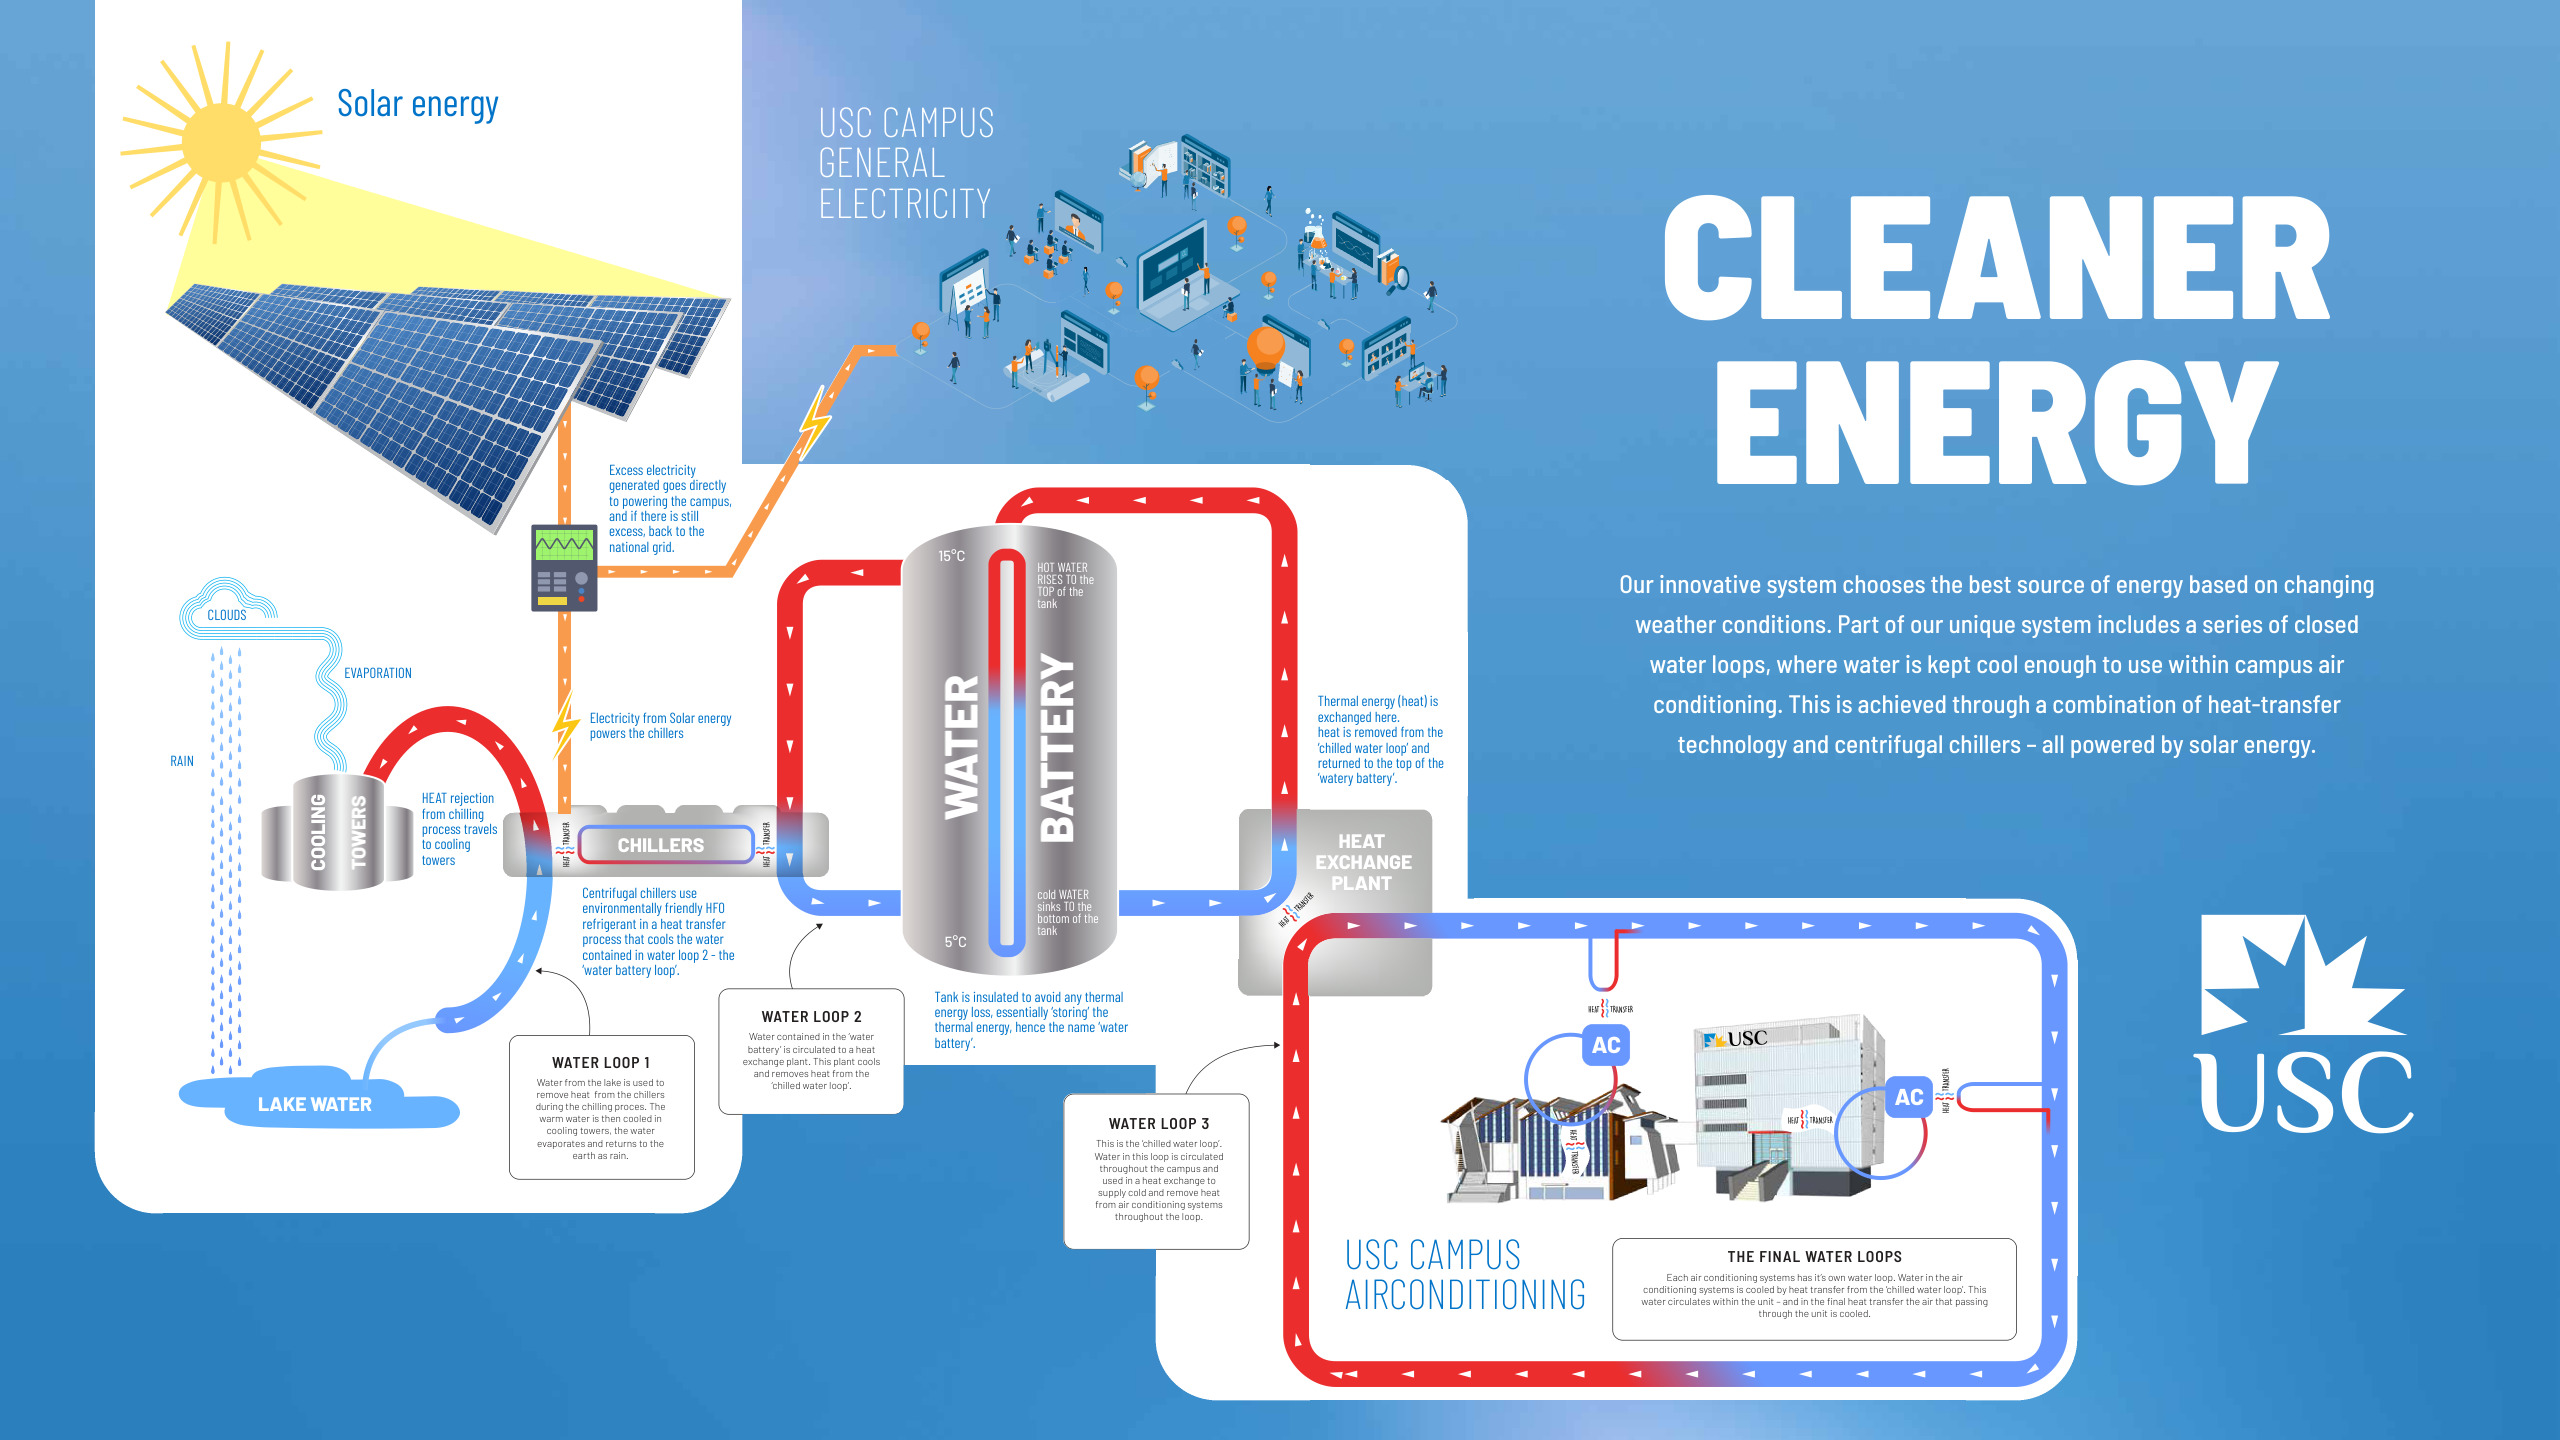 USC Cleaner Energy Diagram